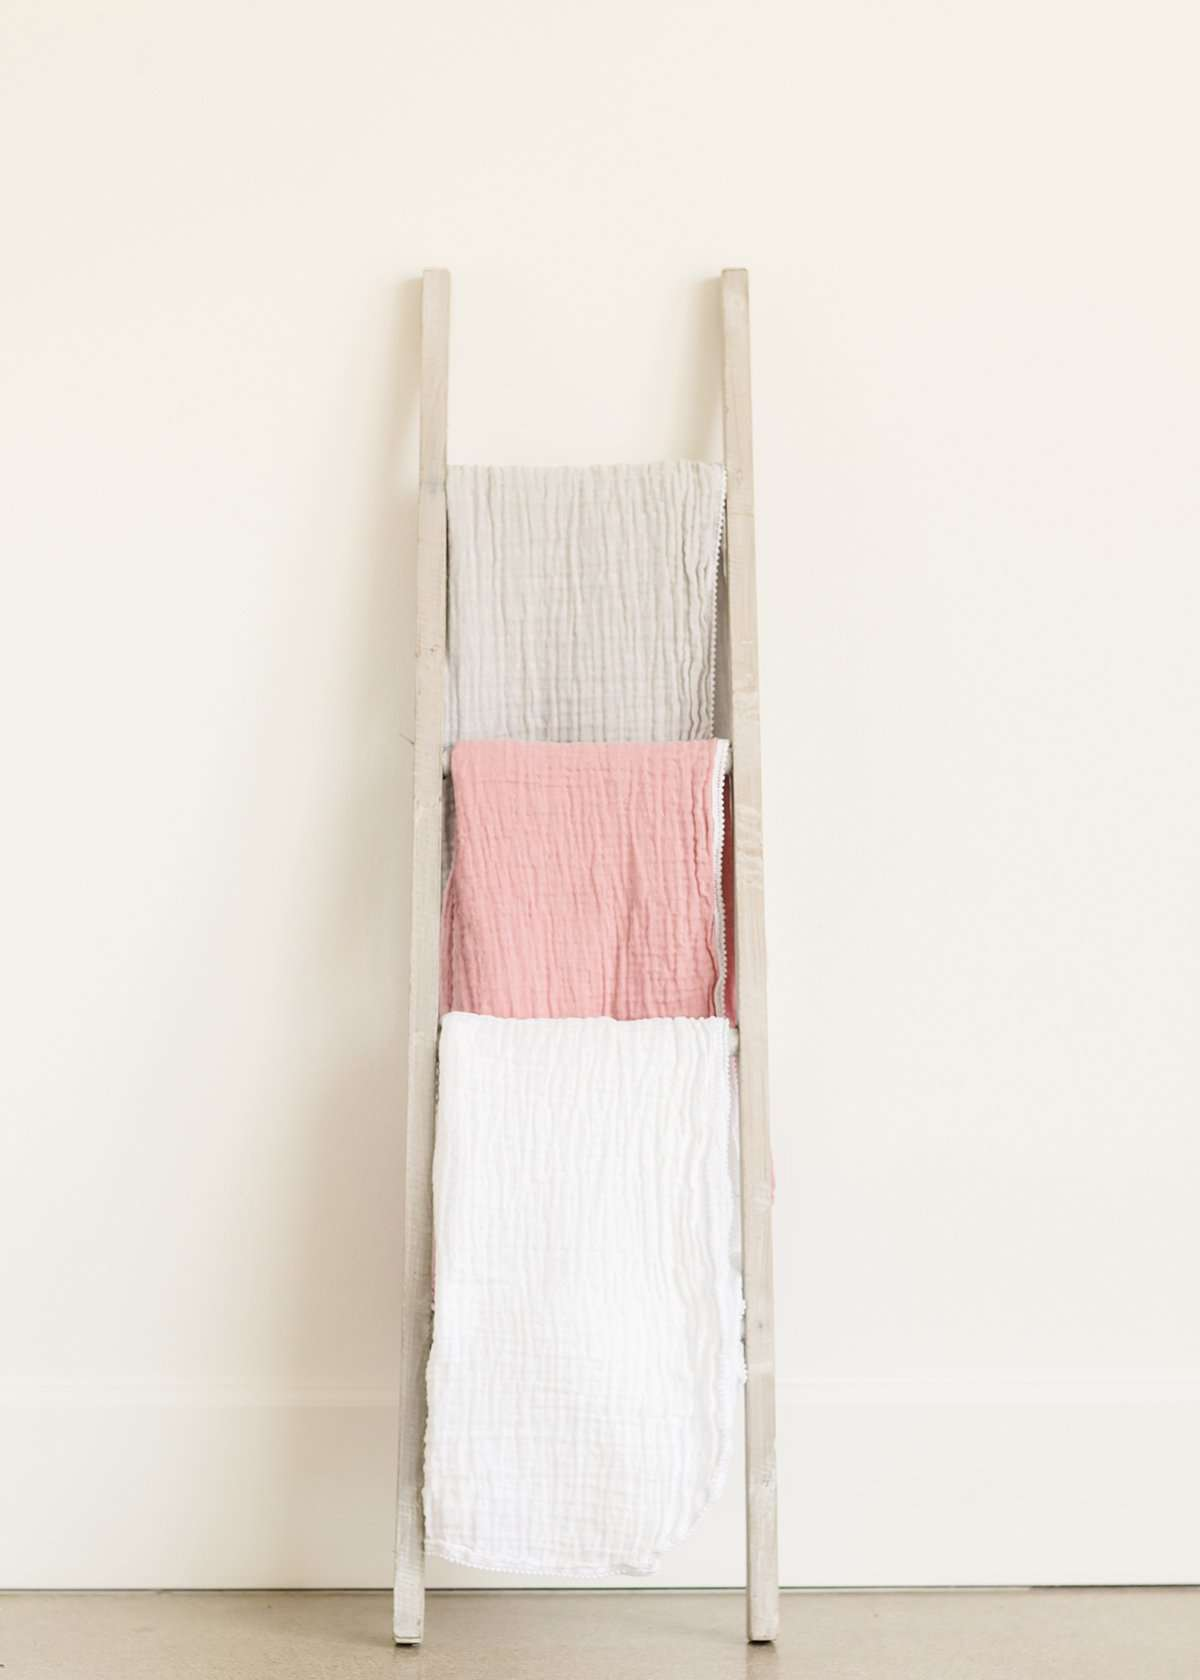 100% Cotton muslin swaddle blanket in gray, mauve or white